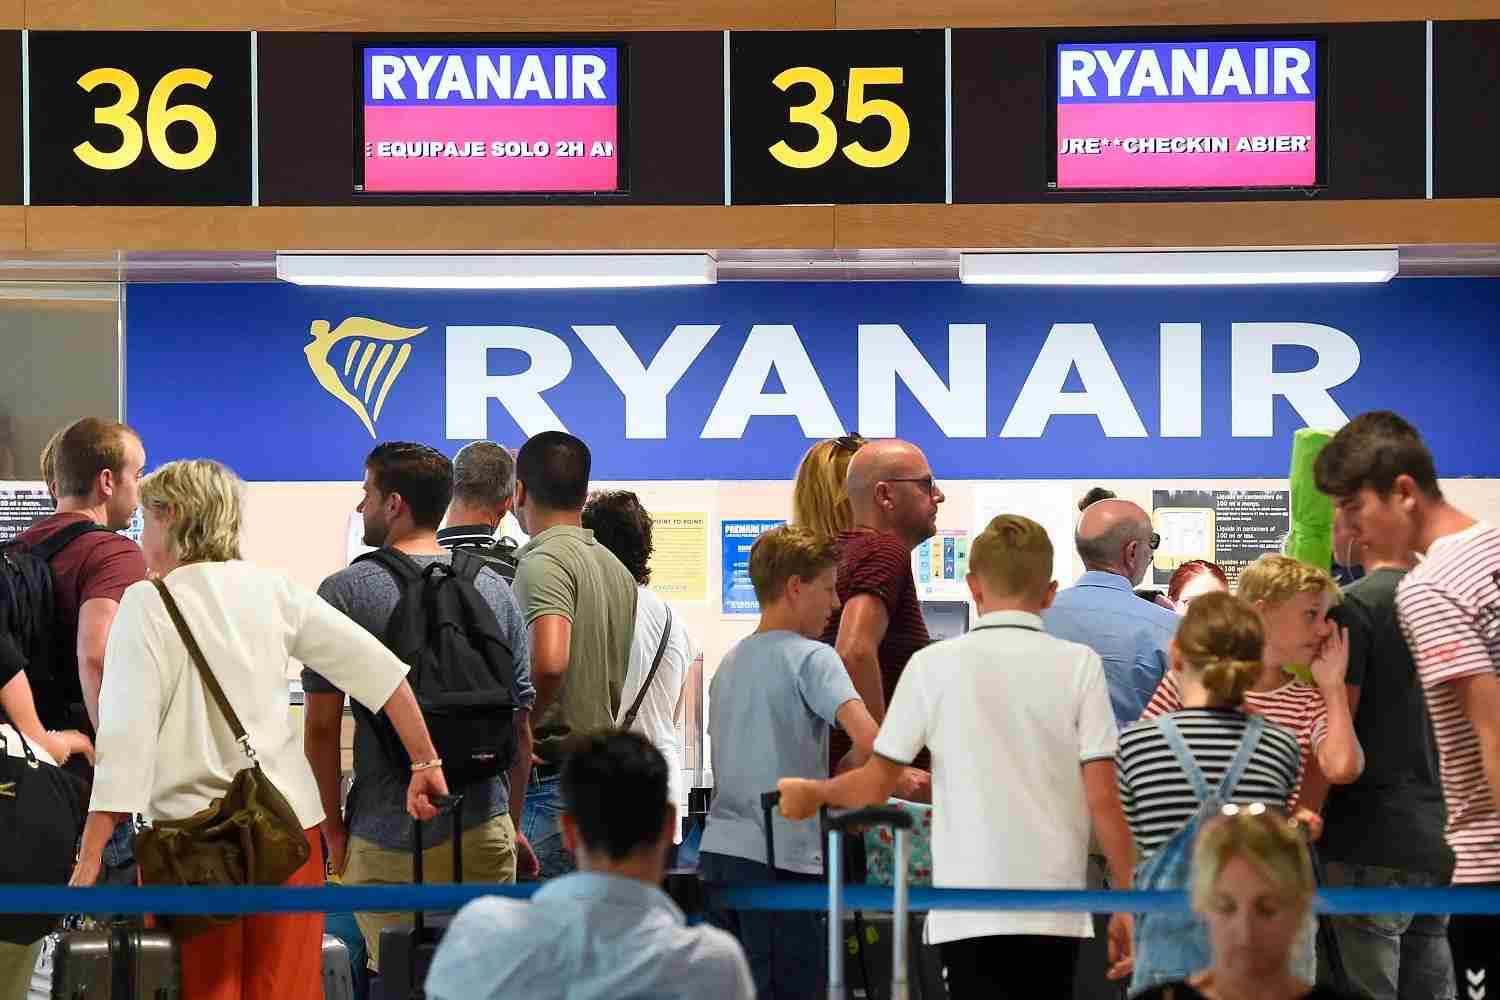 Passengers queue at Ryanair check-in counters at the airport in Valencia on July 25, 2018 as the airline